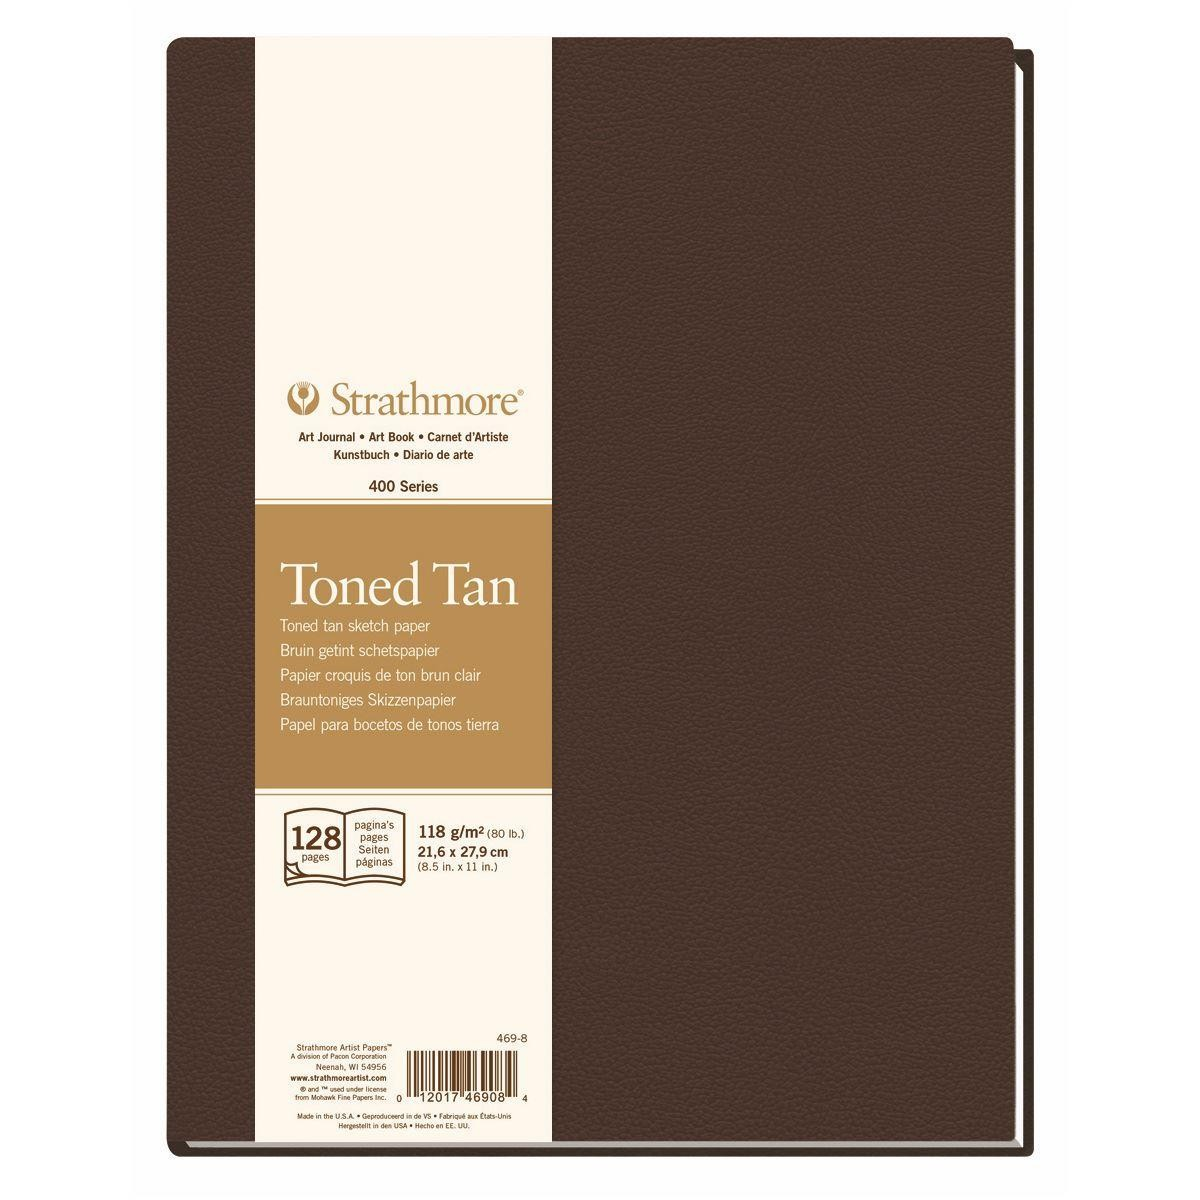 Strathmore 400 series Artist Journal tan tone paper pad